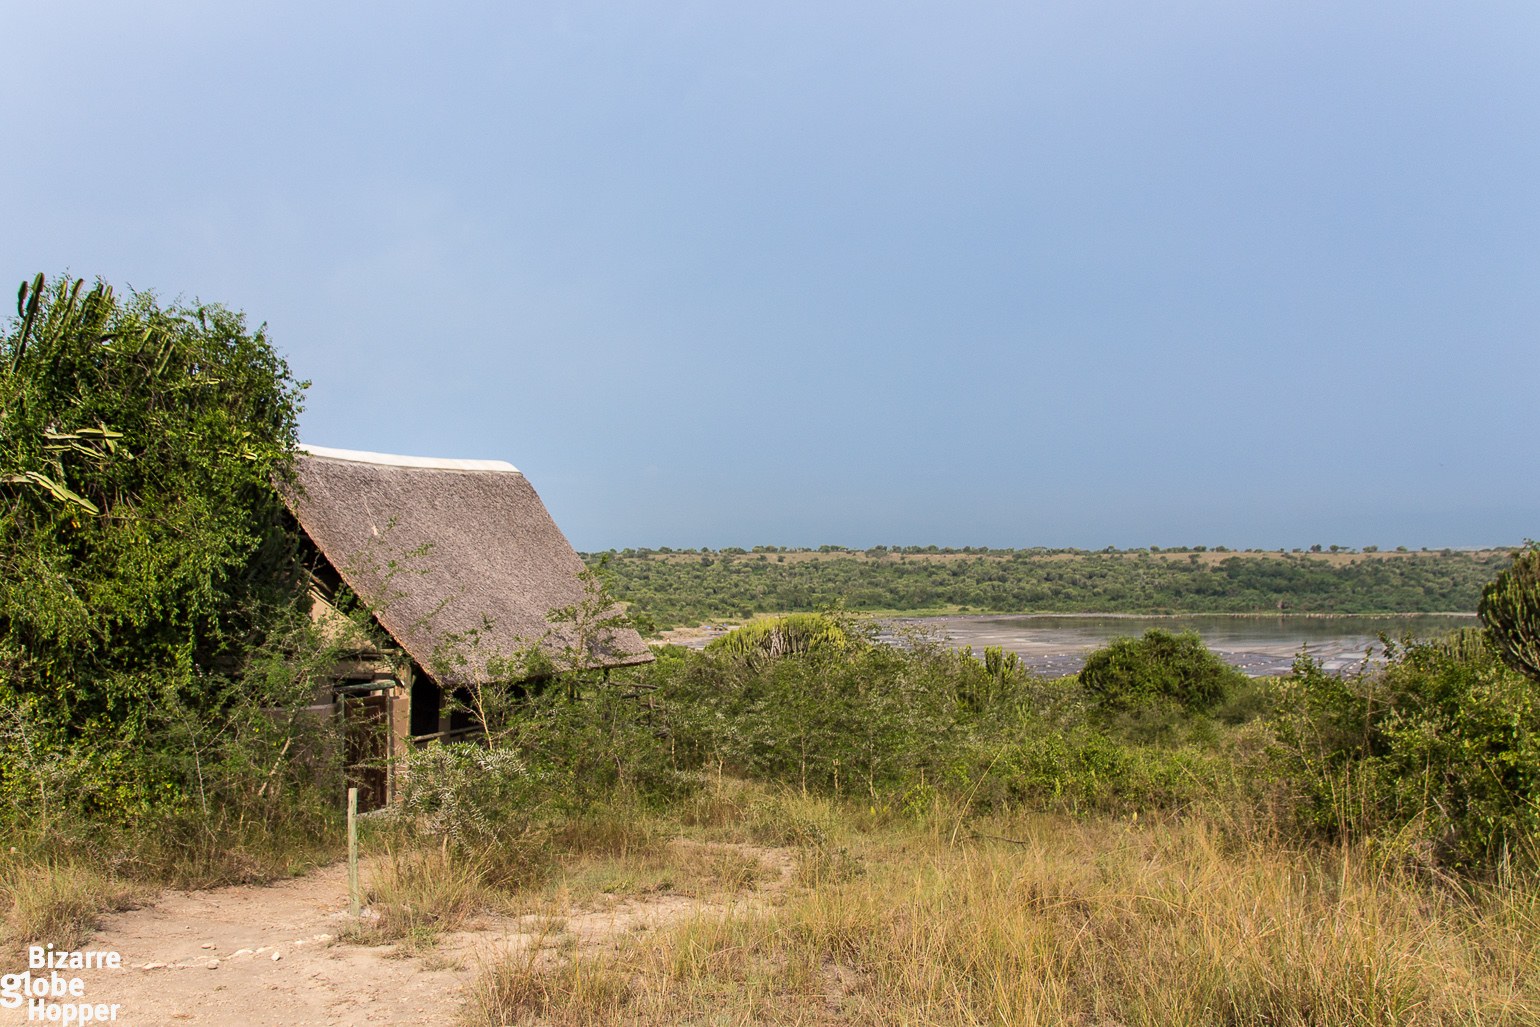 Our tented cottage at Kasenyi Safari Camp in Queen Eizabeth National Park, Uganda